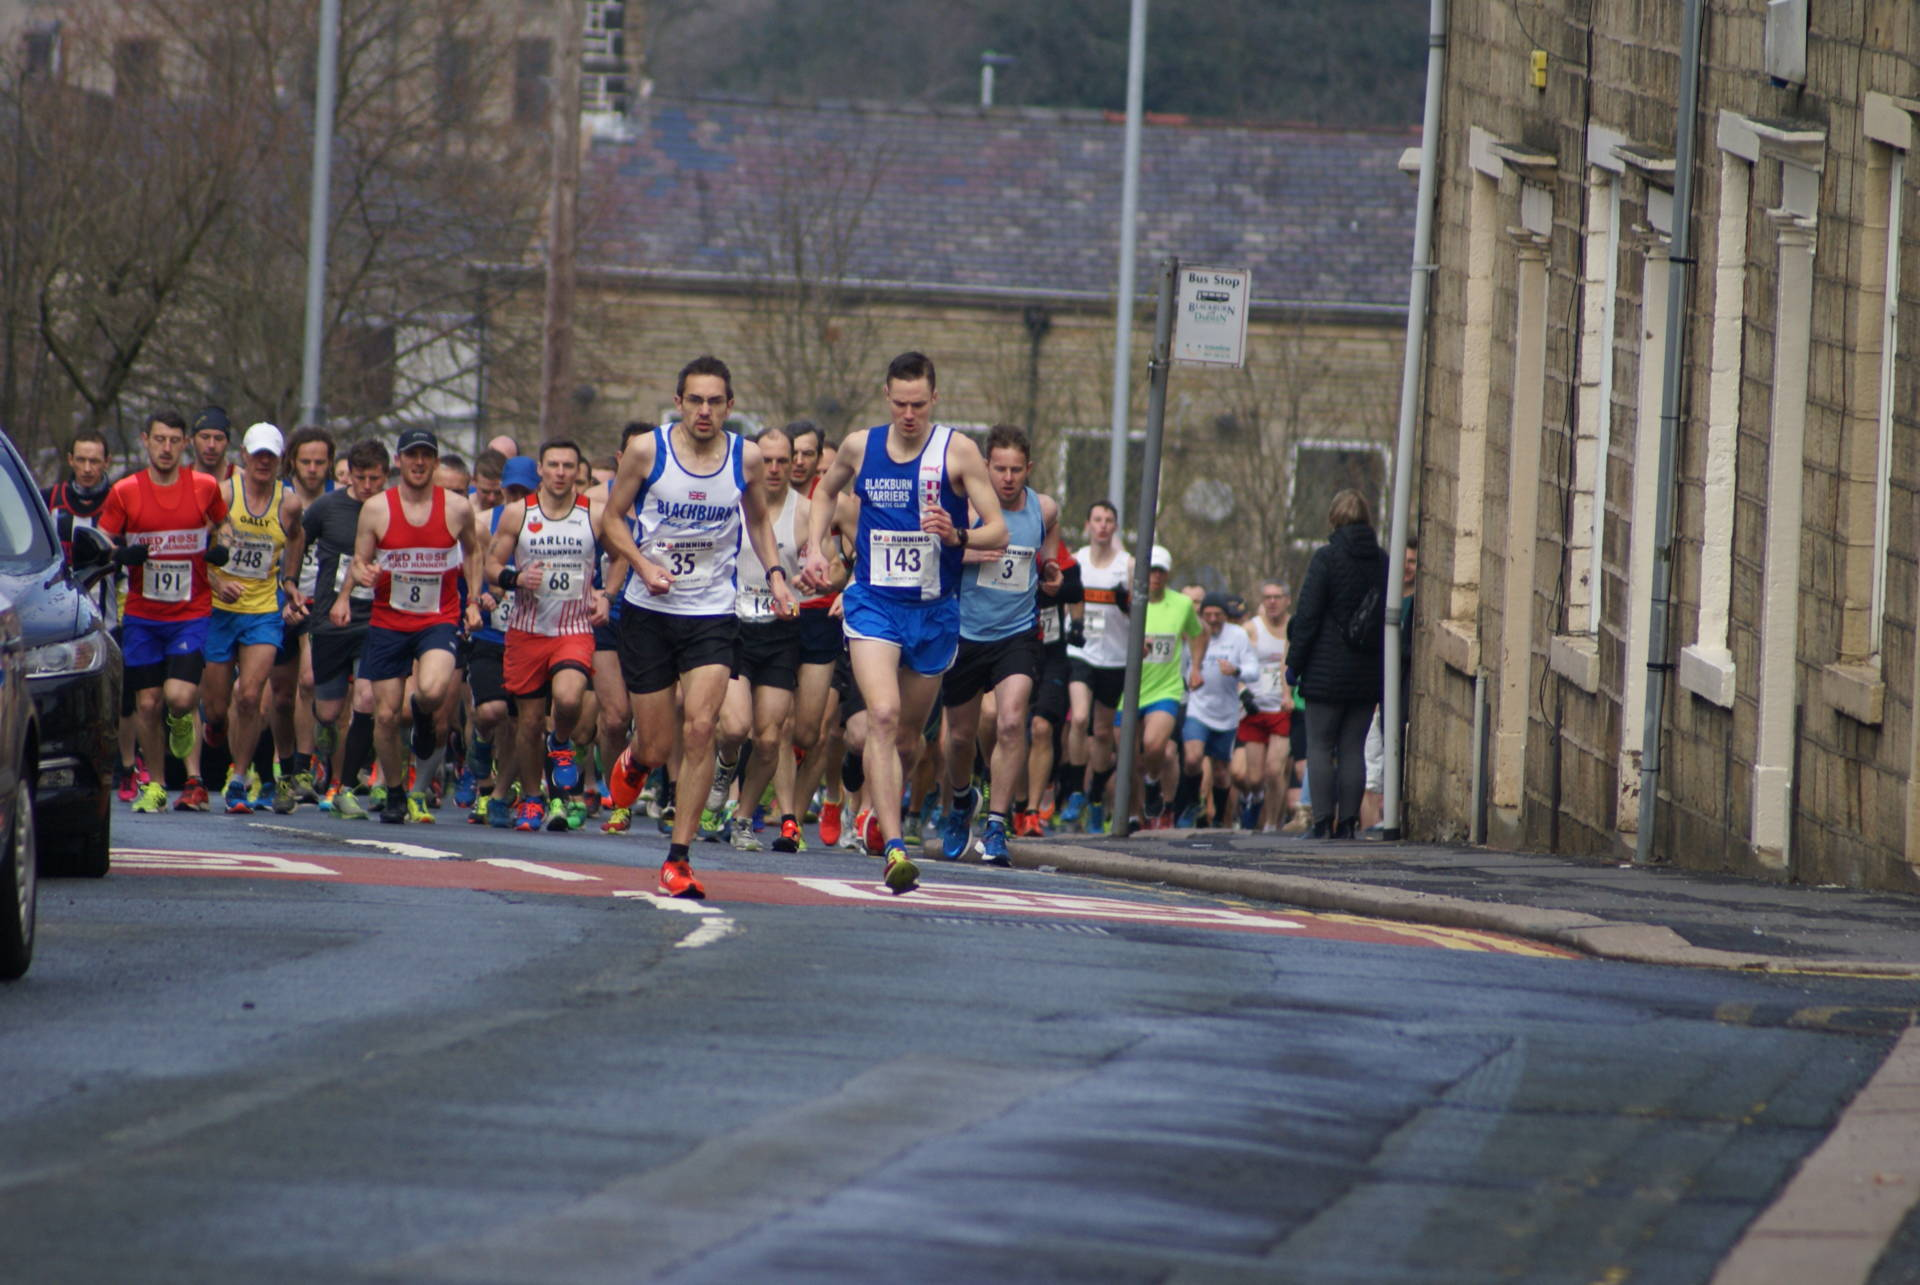 Ben Wins Darwen Half-Marathon and Harriers win the Team Prize – Andy misses the Club Record by seconds – Pendle Hill and Lanhydrock